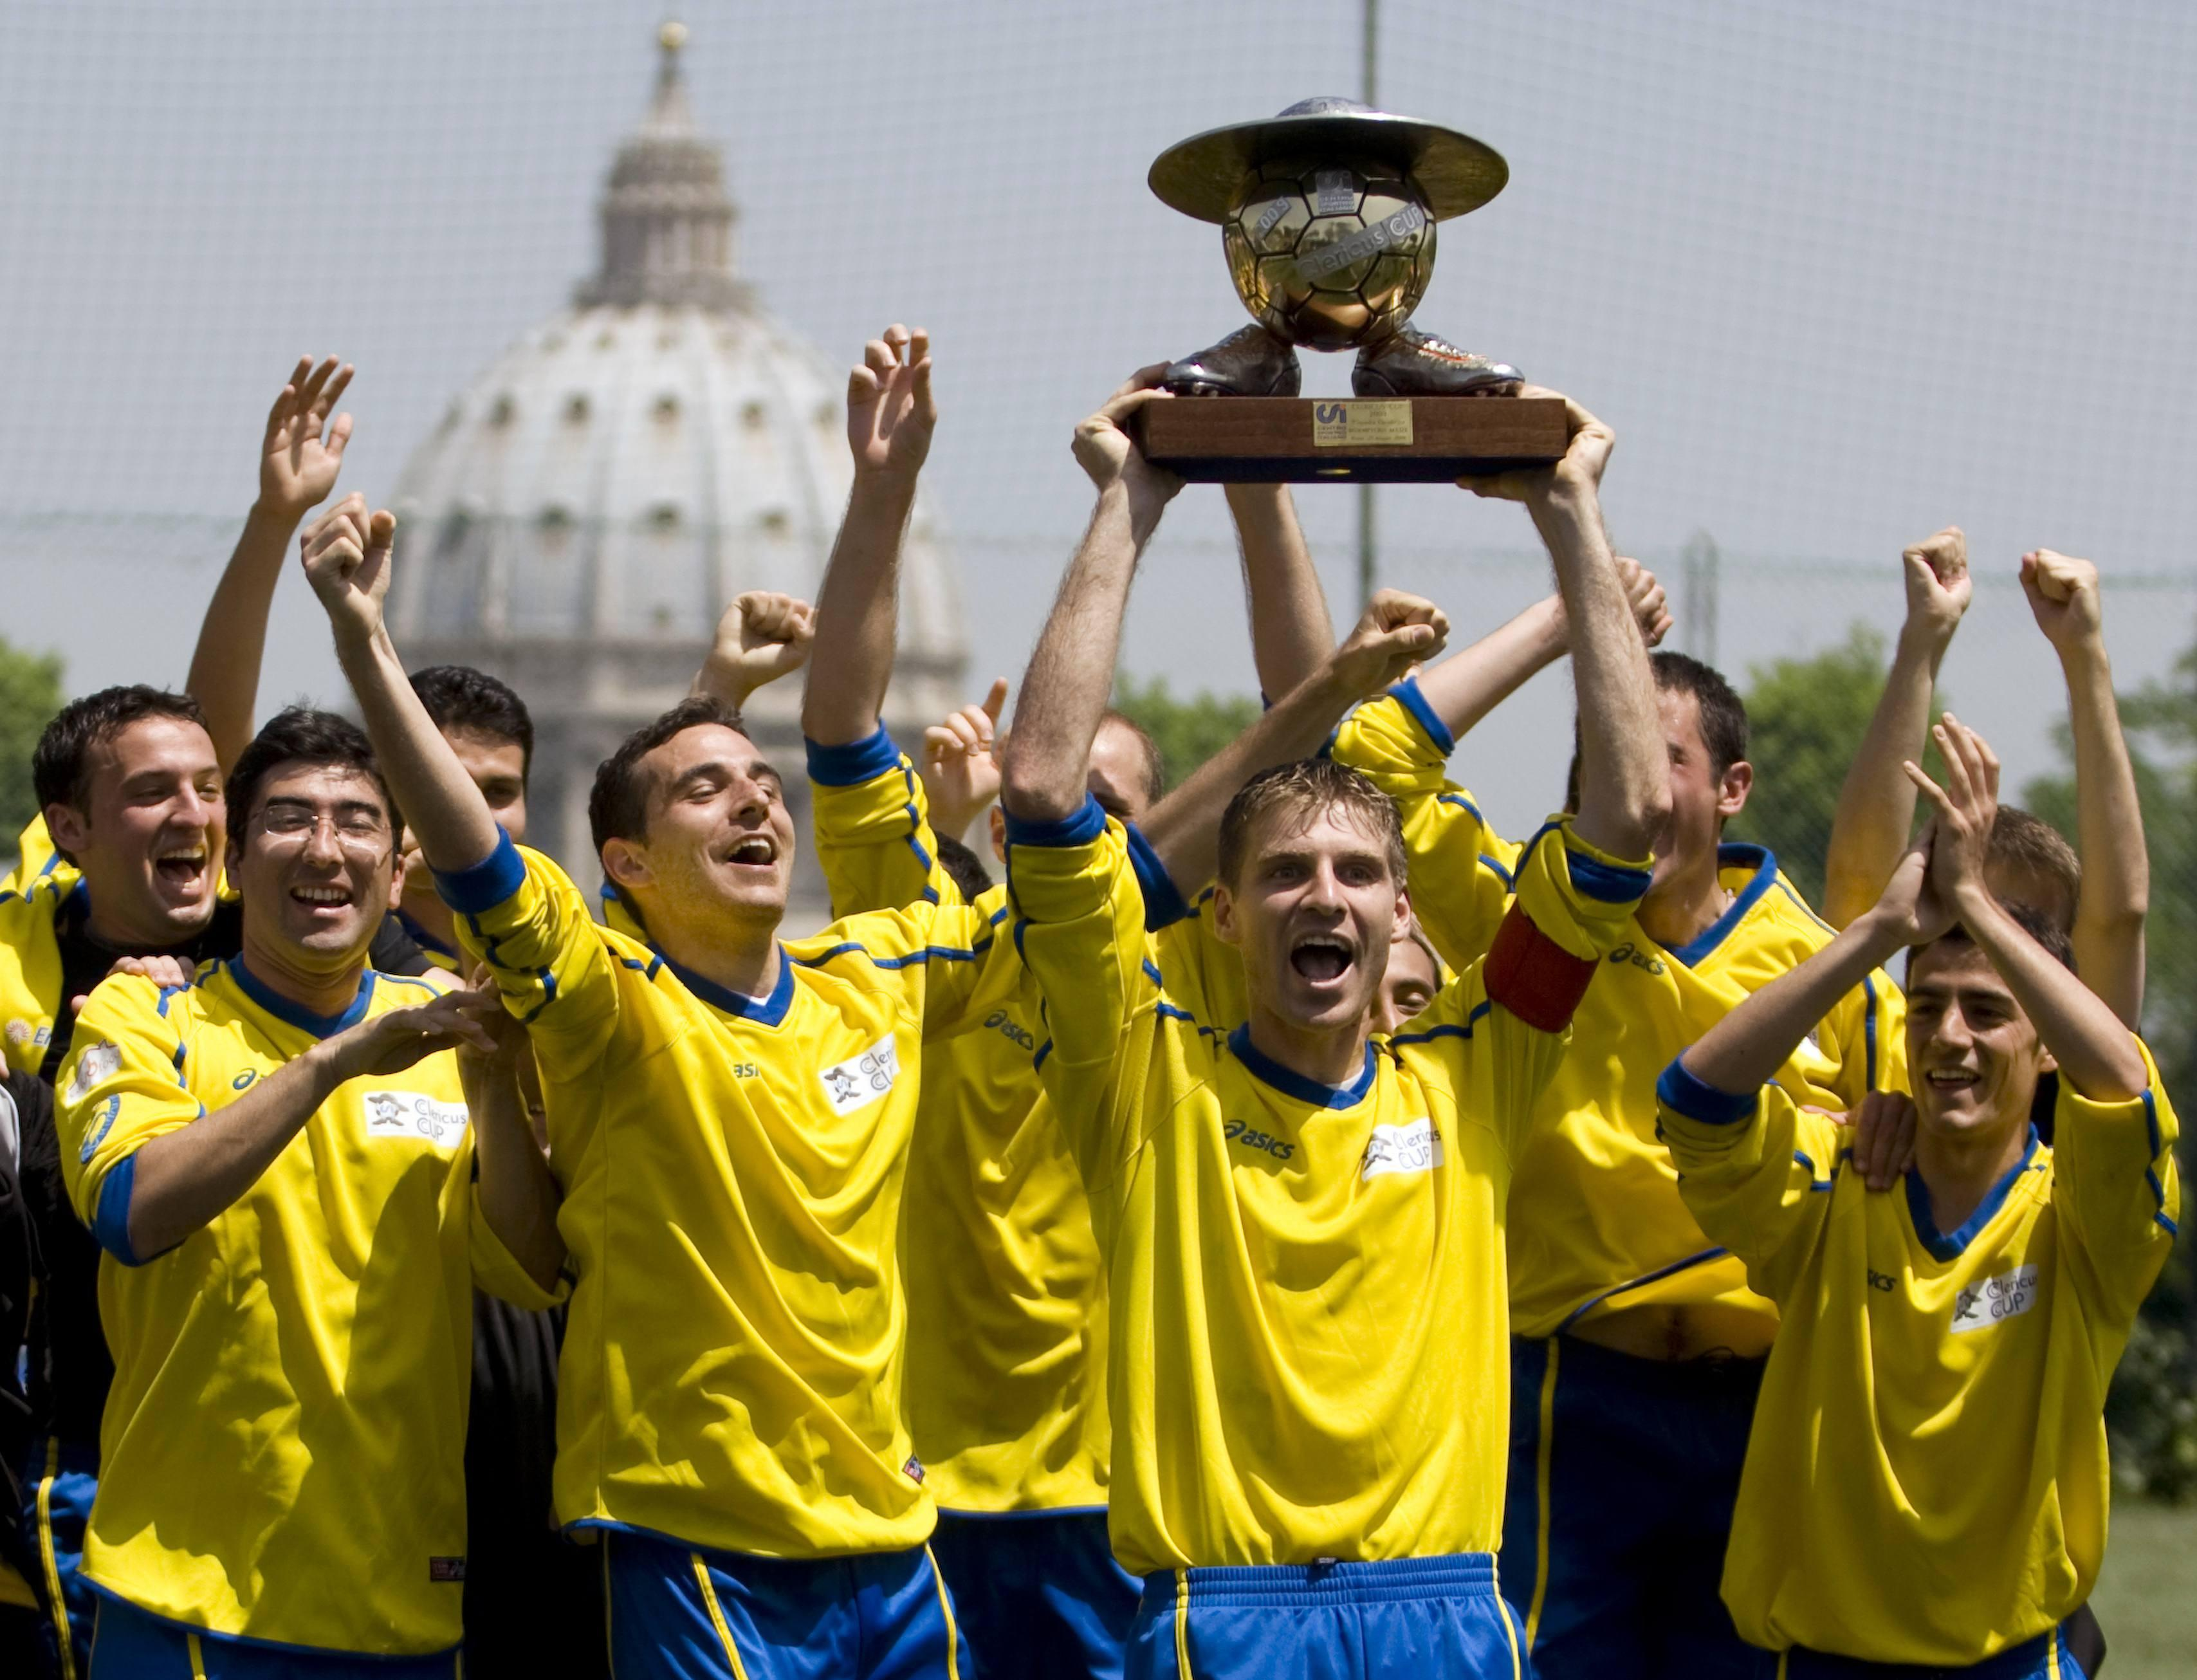 Players from the international soccer team of priestly scholars Redemptoris Mater celebrate after winning the Clericus Cup in Rome